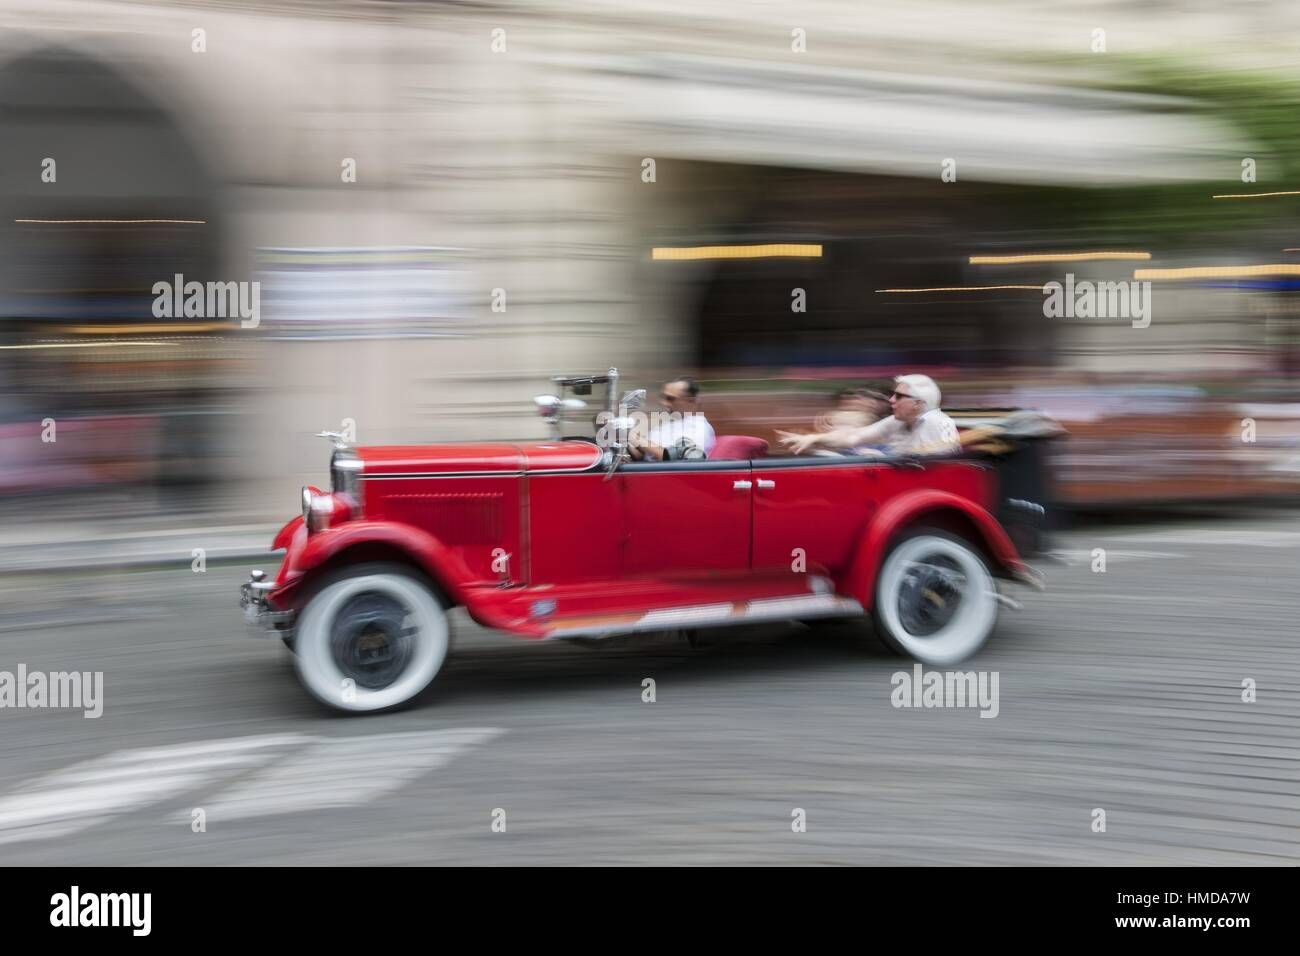 Citytour with old car is very popular activity in town, Prague, Czech Republic - Stock Image